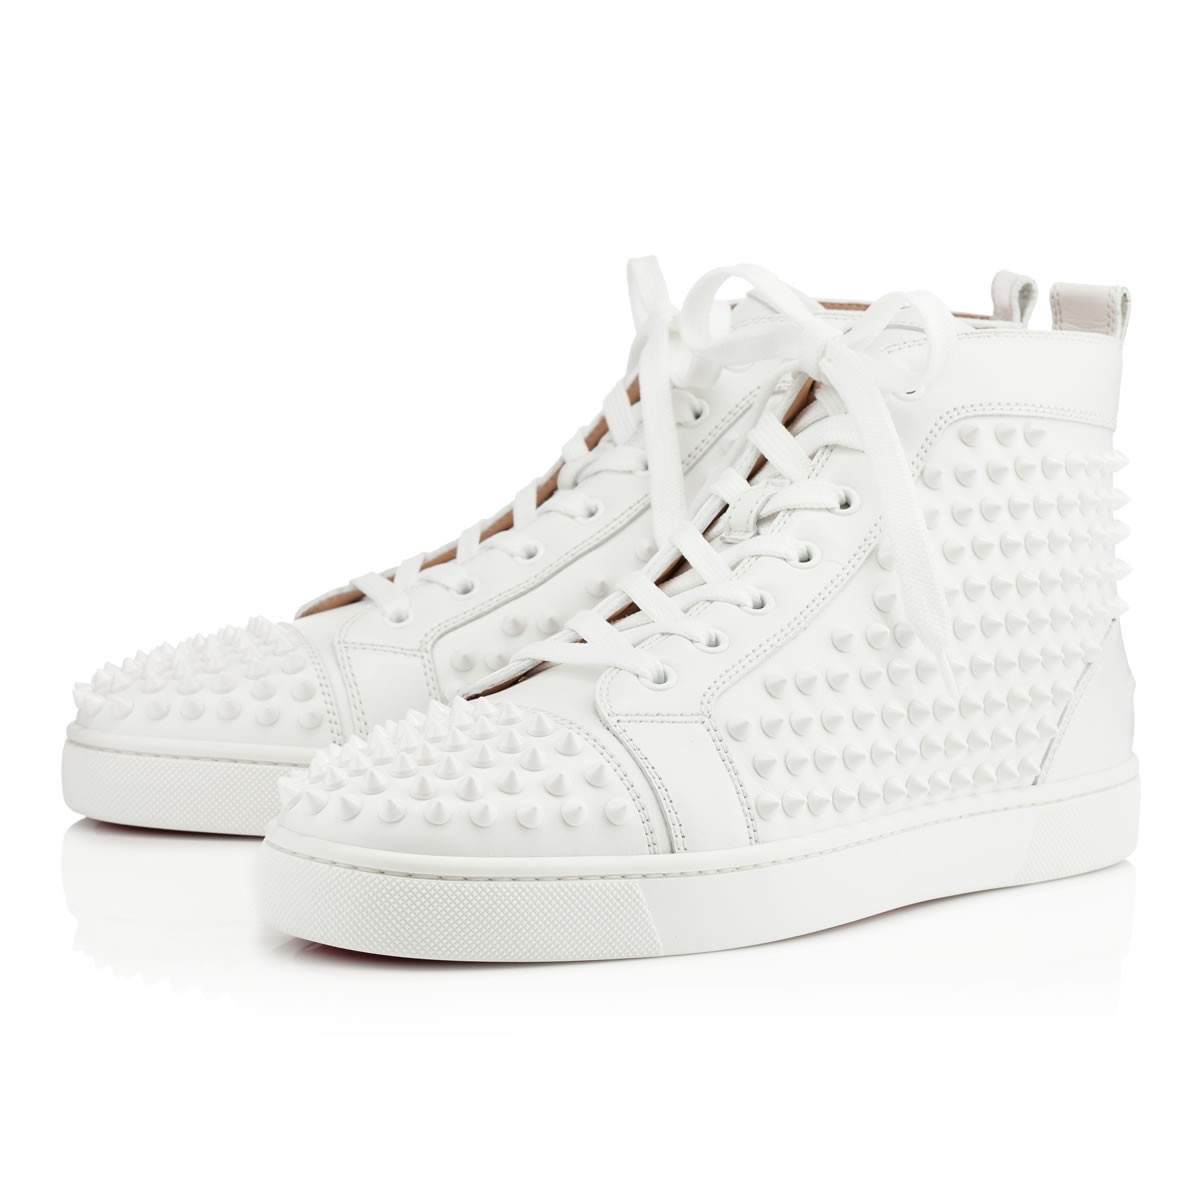 christian louboutin white and gold